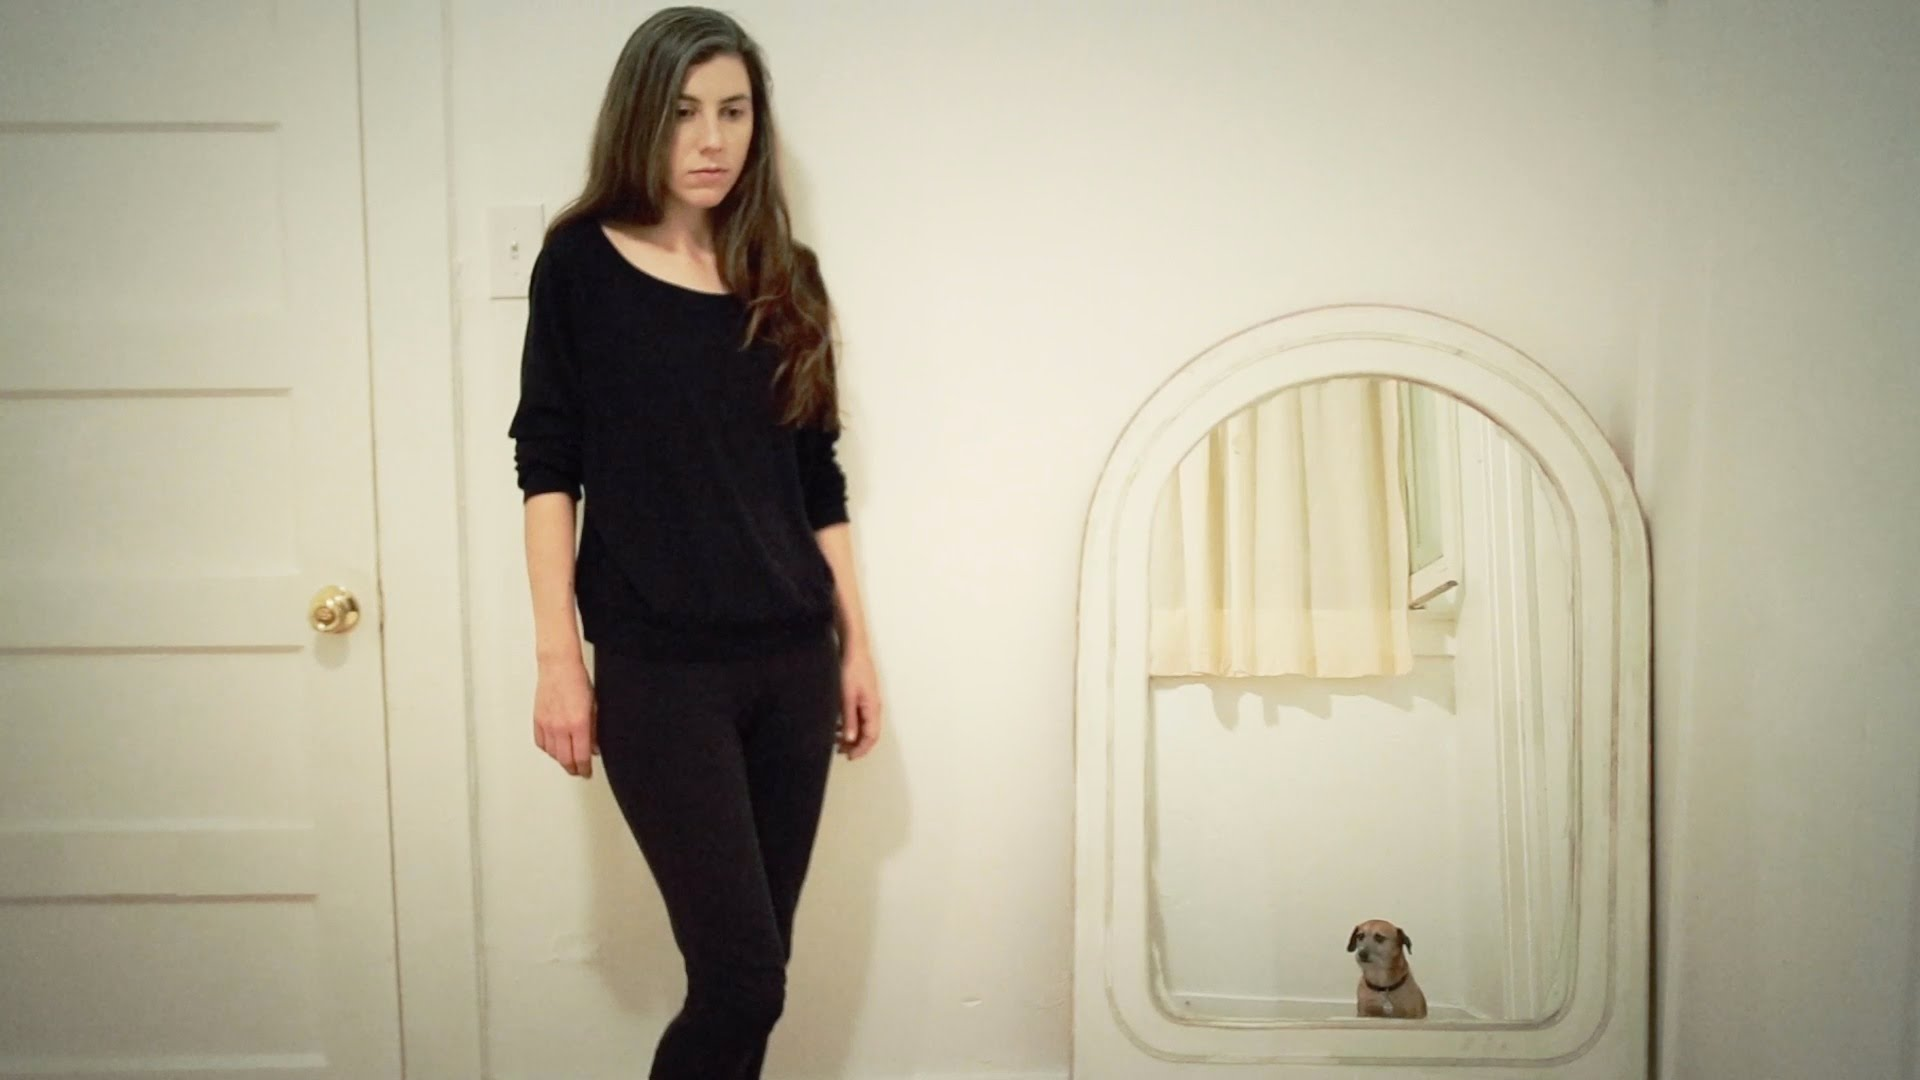 Julia Holter Expands US Tour. The dates start on January 28th in San Diego.